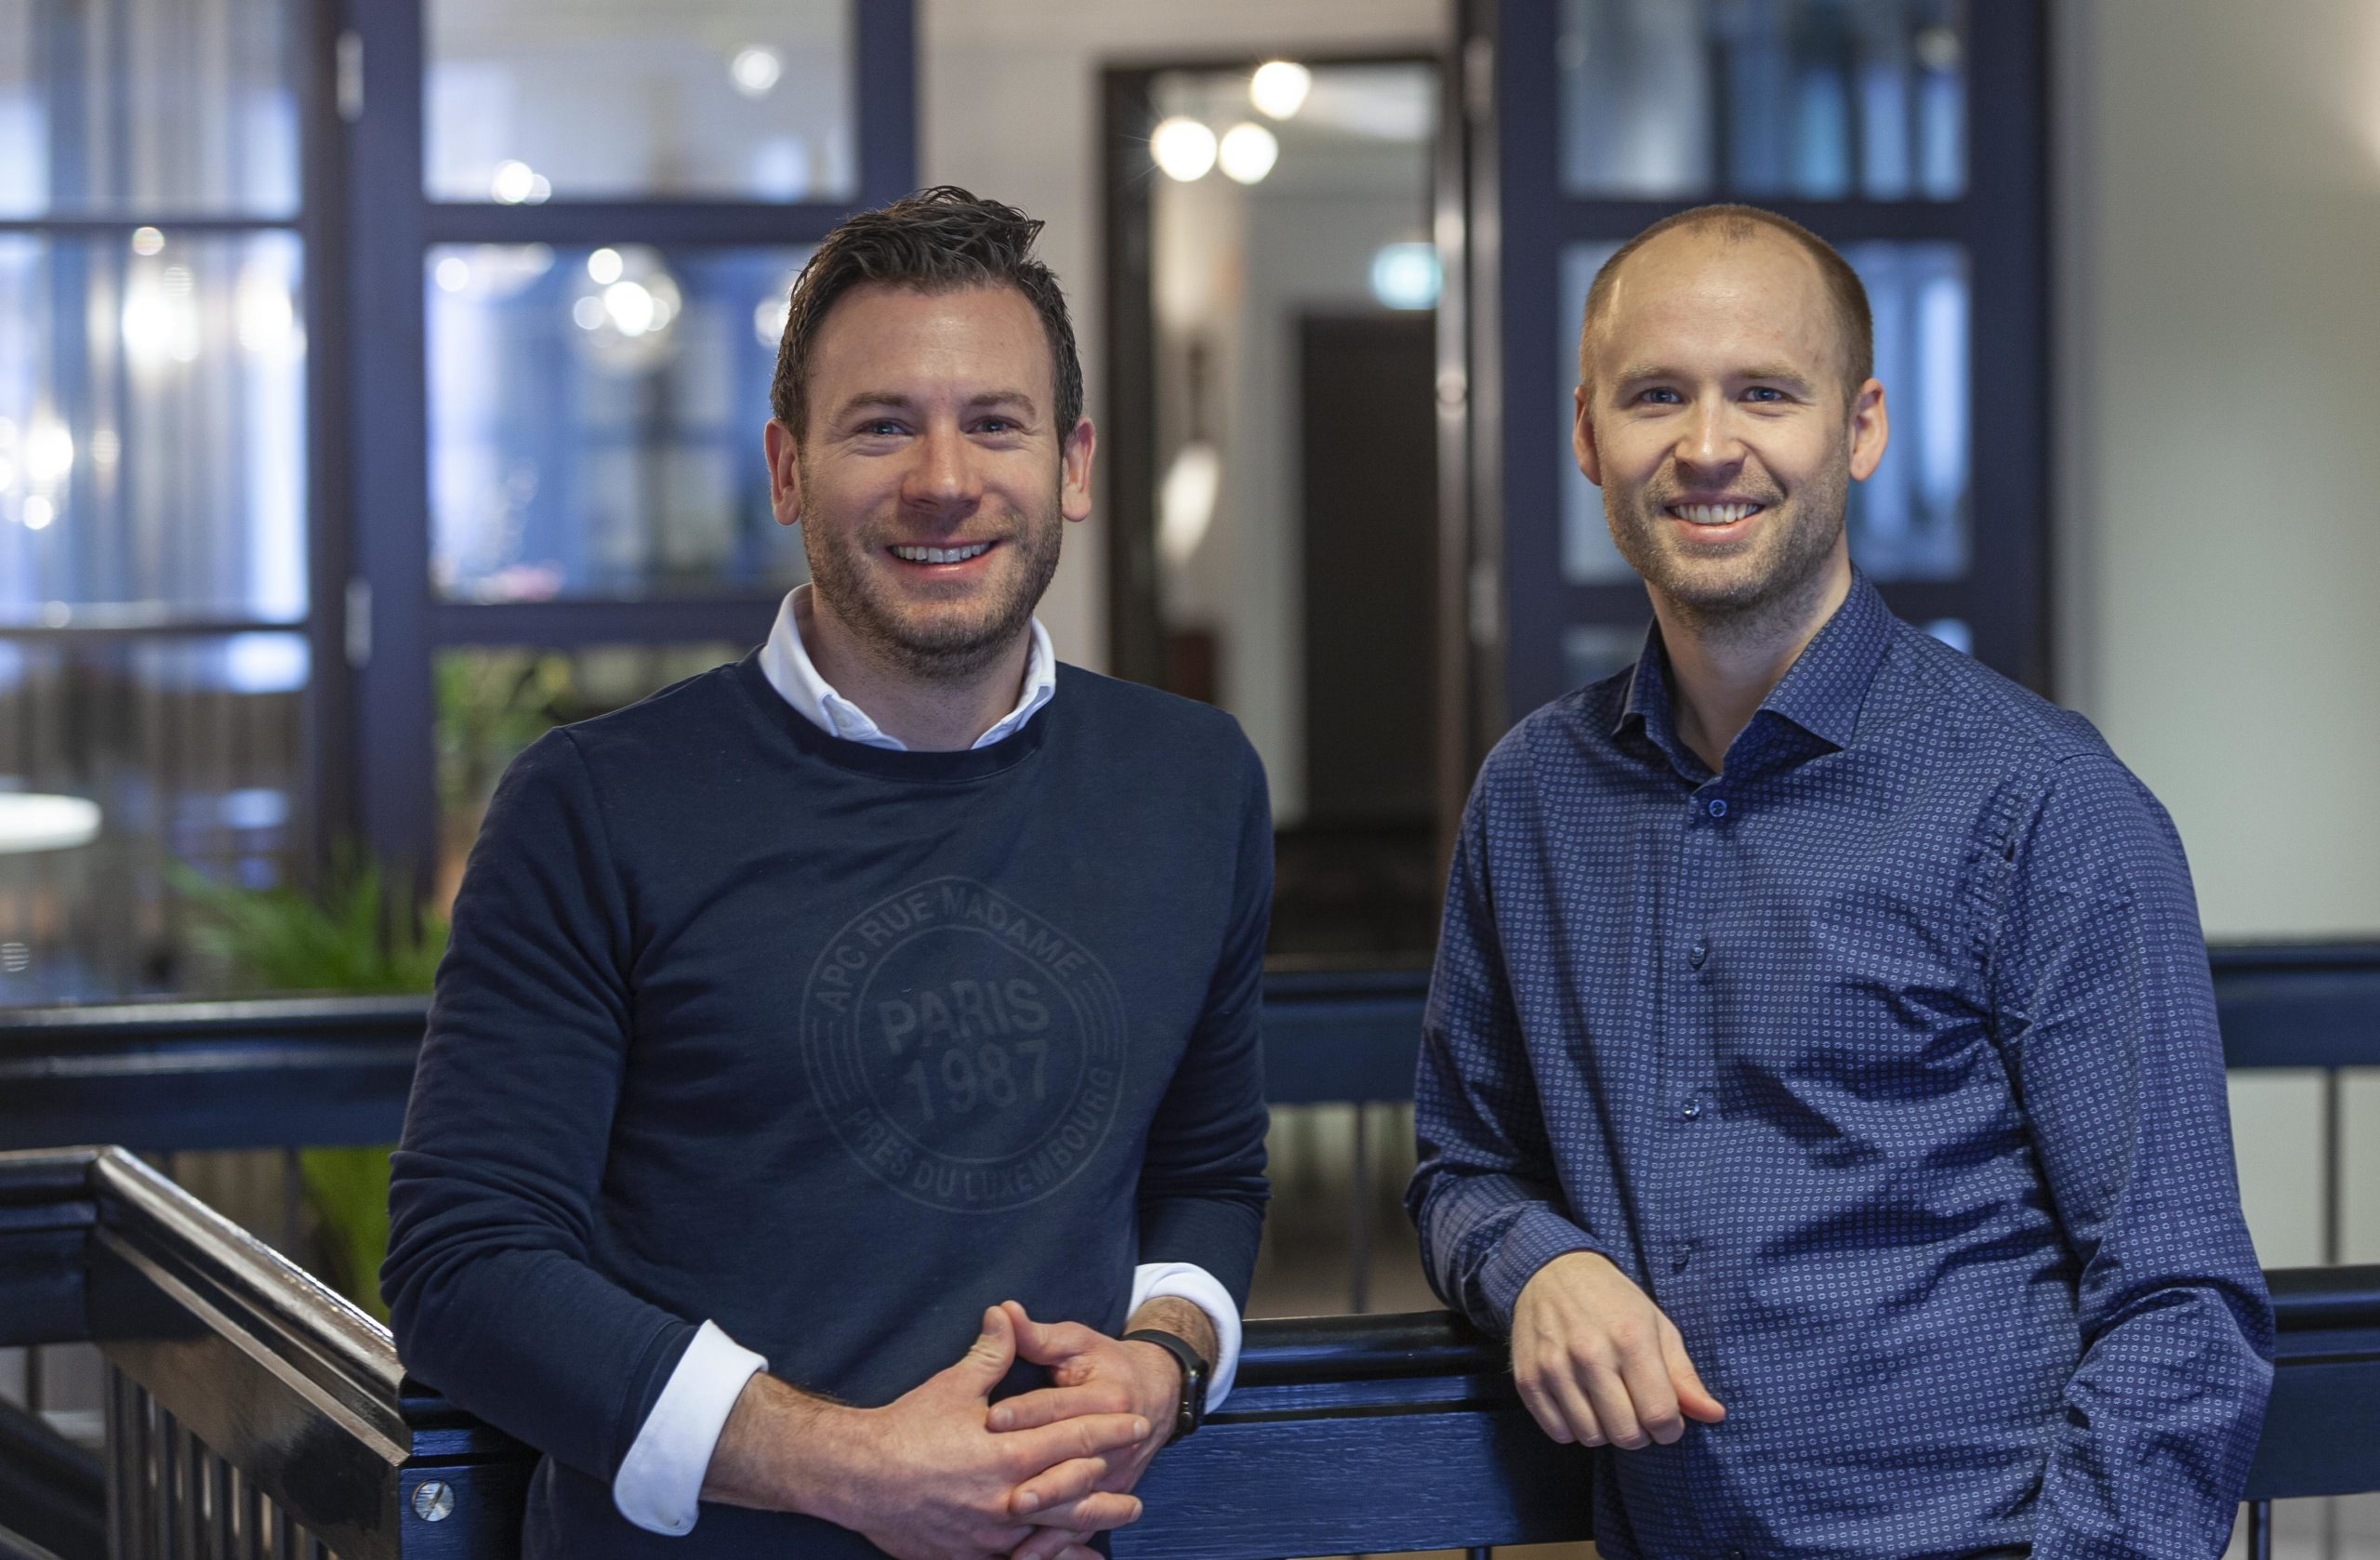 Privacy Management startup DPOrganizer recruits Detectify's CRO to lead international expansion as CEO